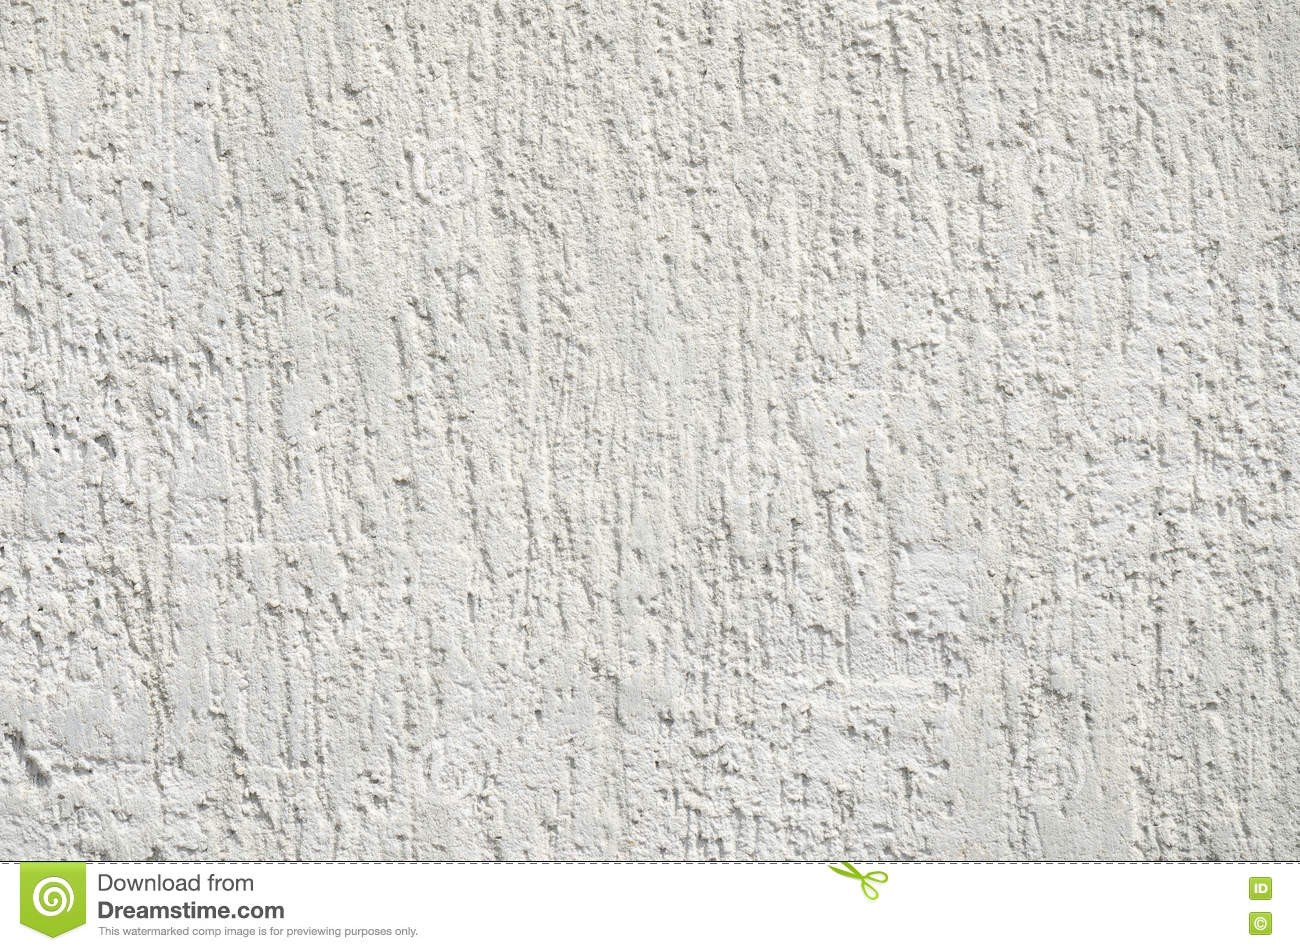 Light concrete wall with cracks